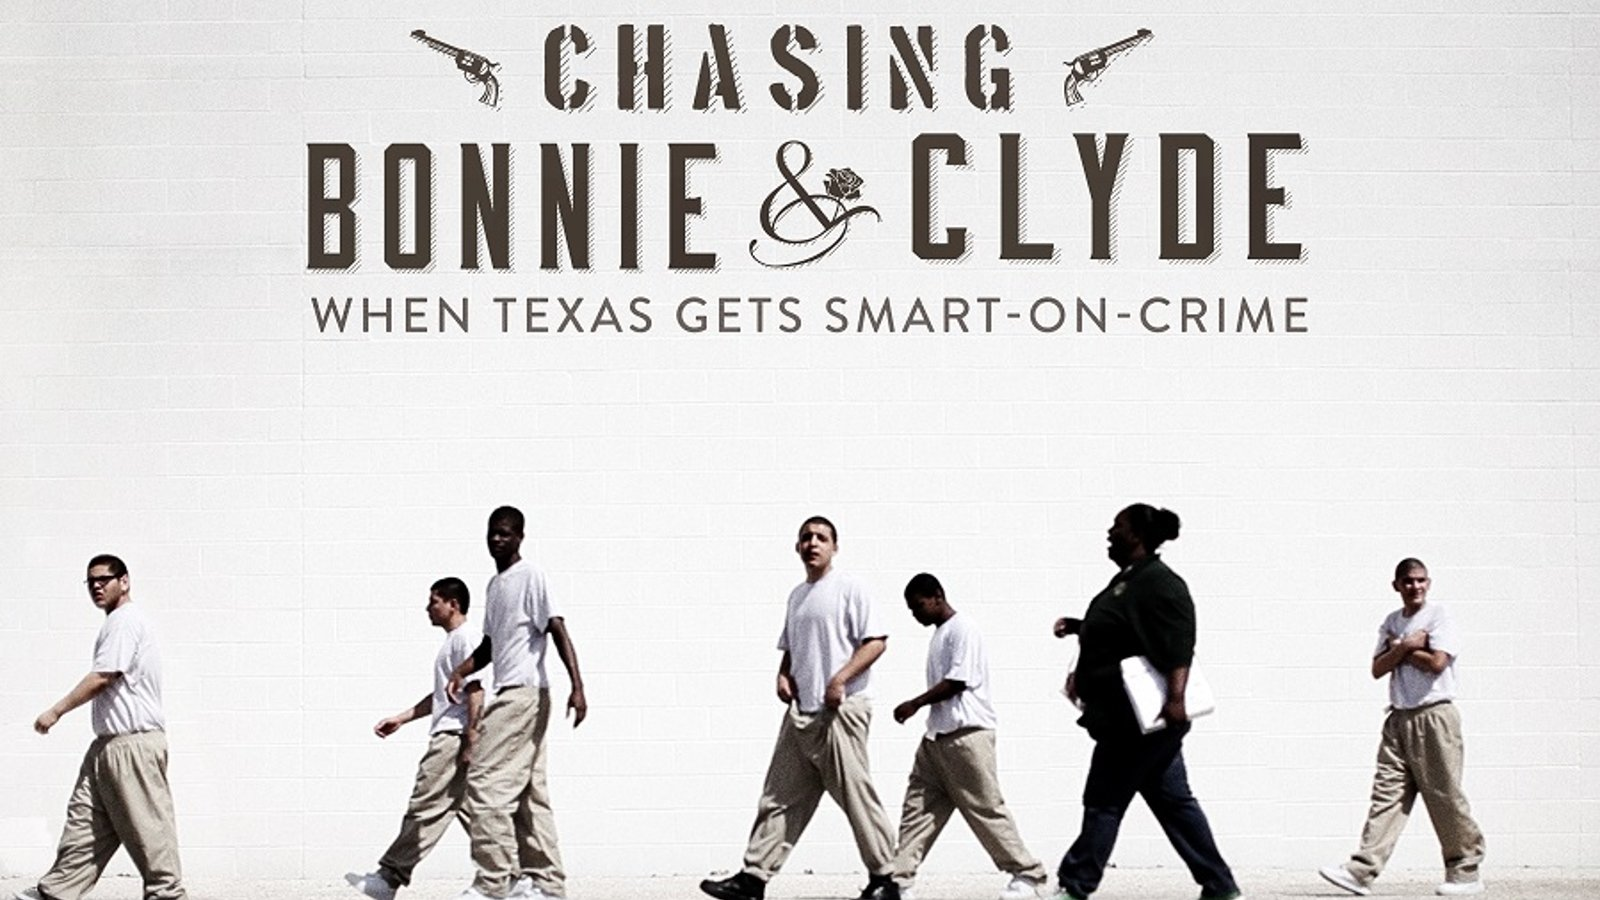 Chasing Bonnie & Clyde - When Texas Gets Smart-on-Crime